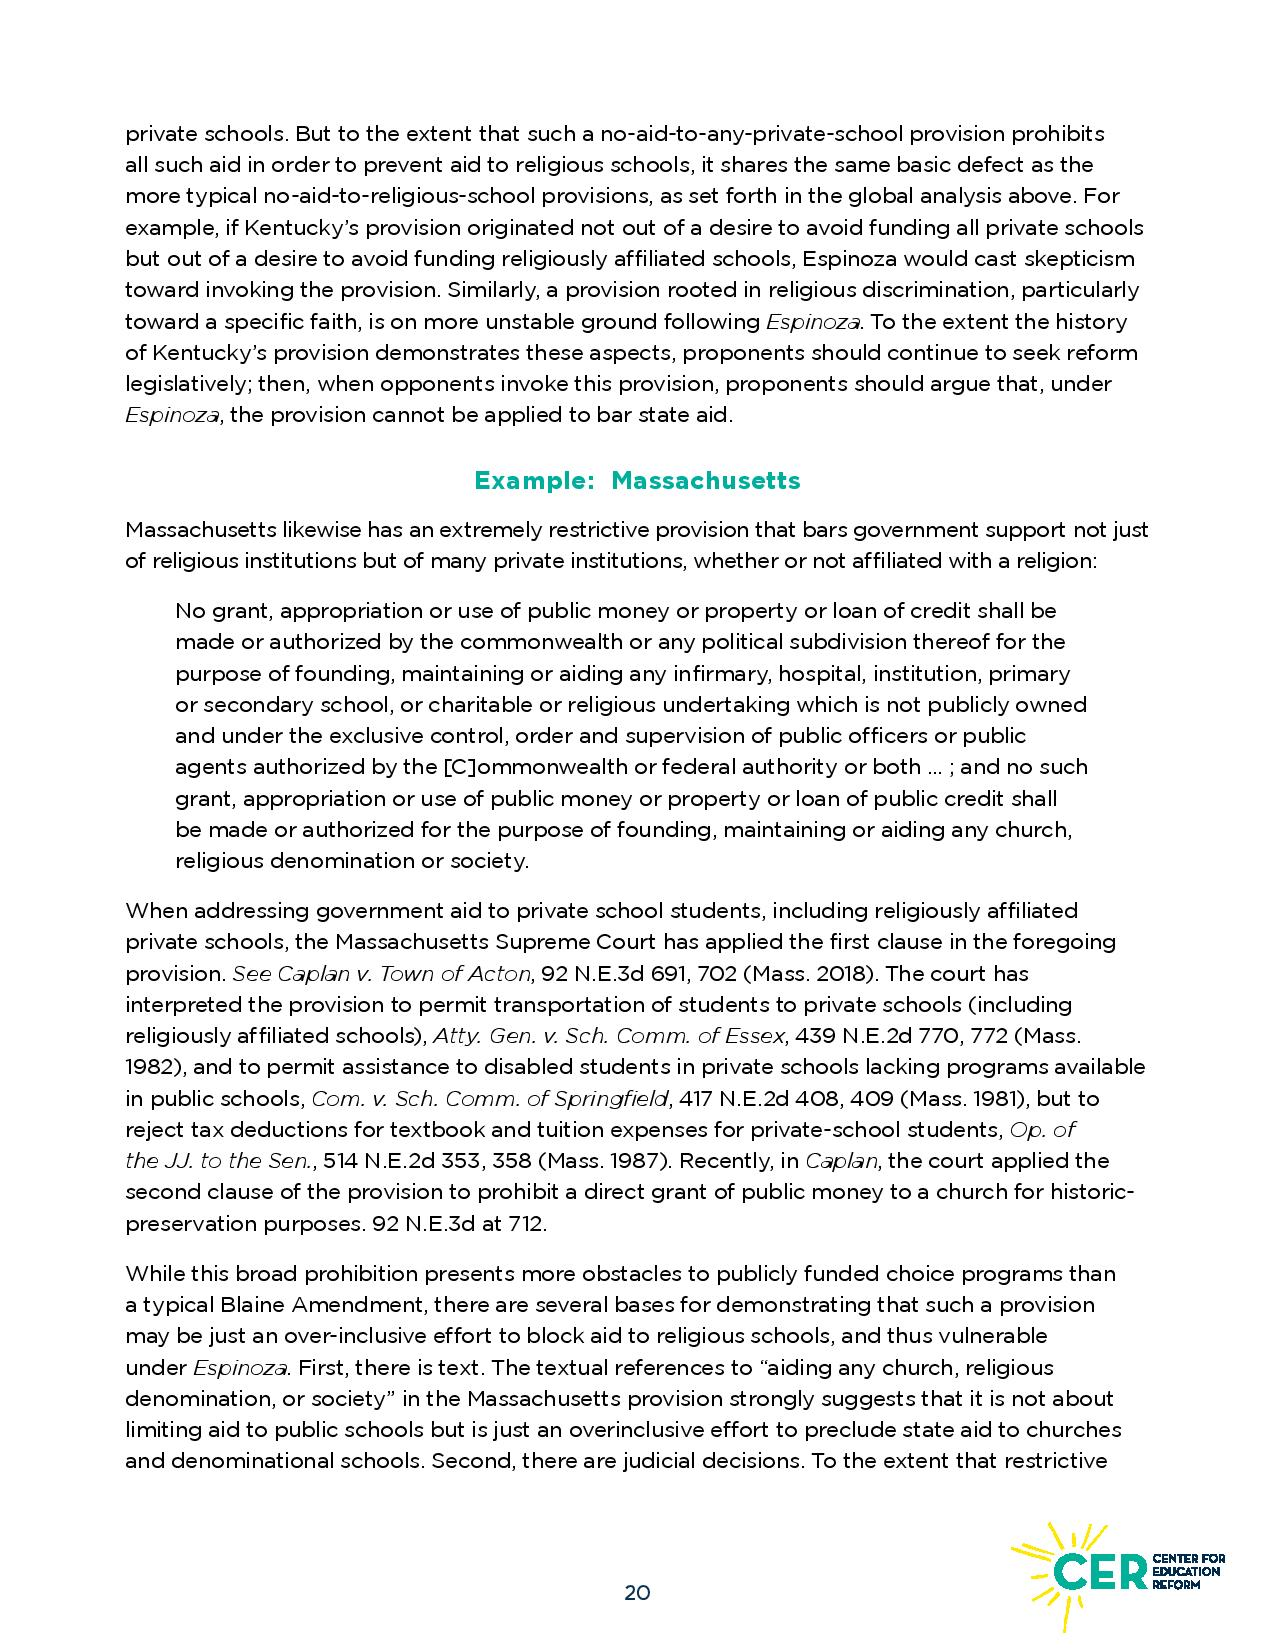 CER_Whitepaper_Blaine-page-020